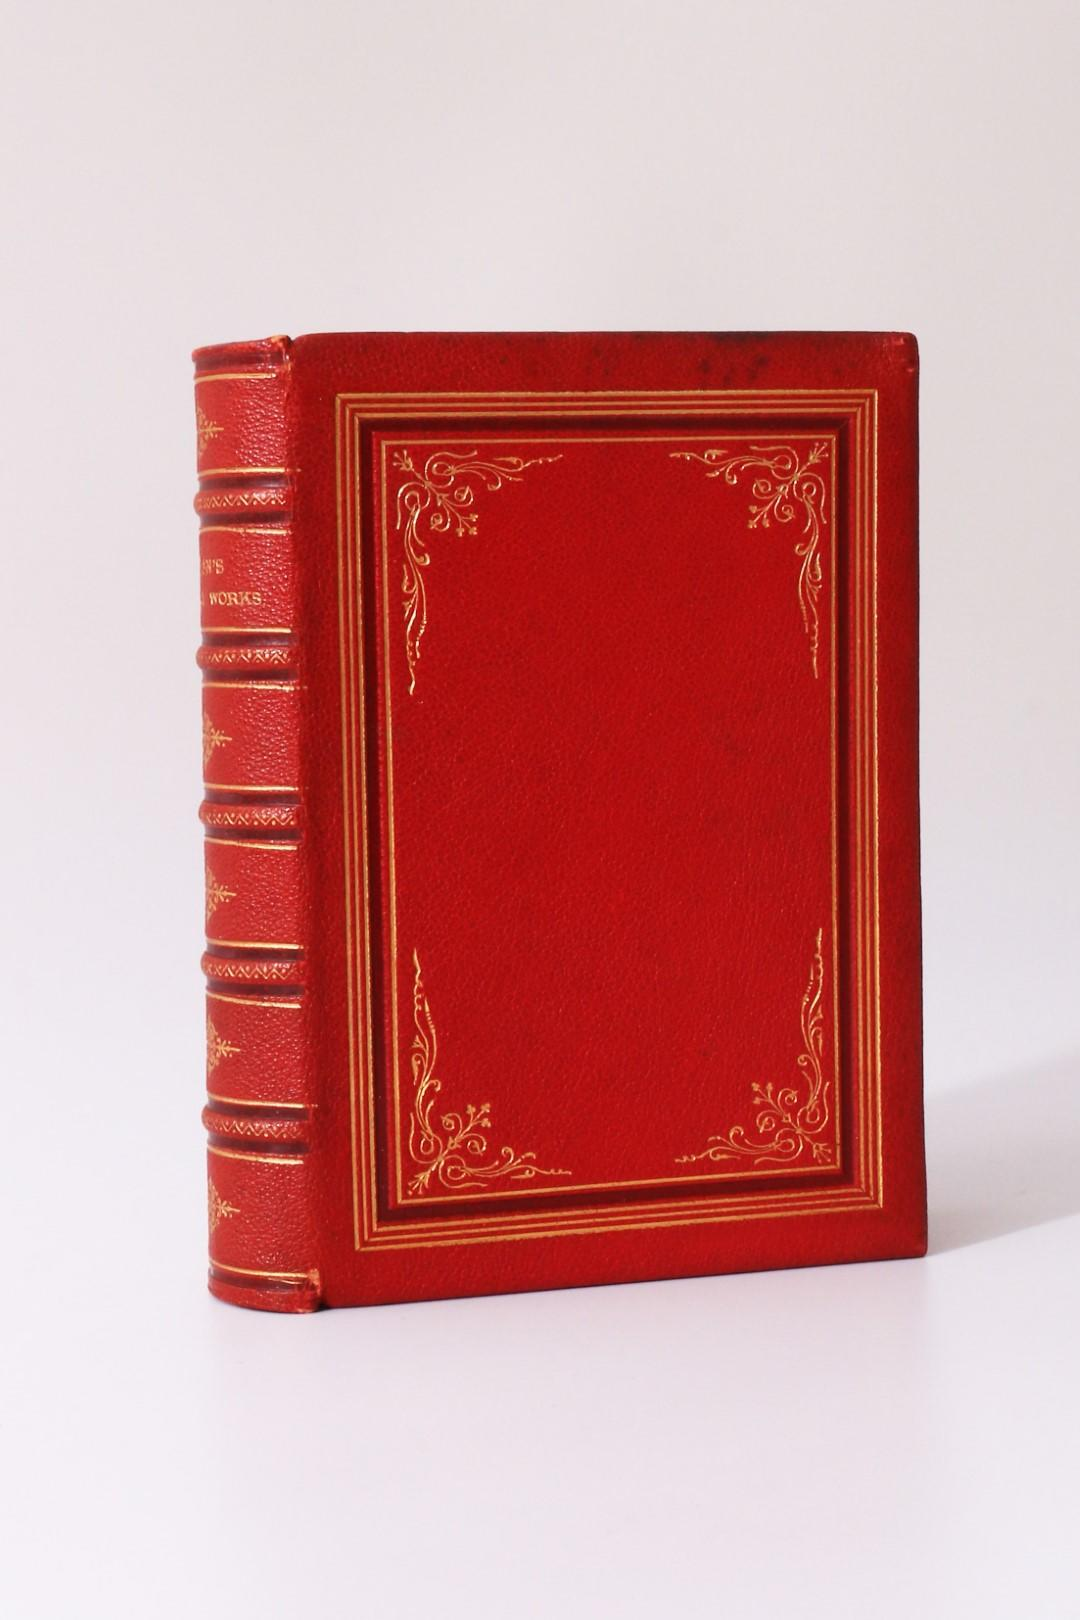 Lord Byron - The Poetical Works - Ward, Lock & Co., n.d. [c1890s], Later Edition.